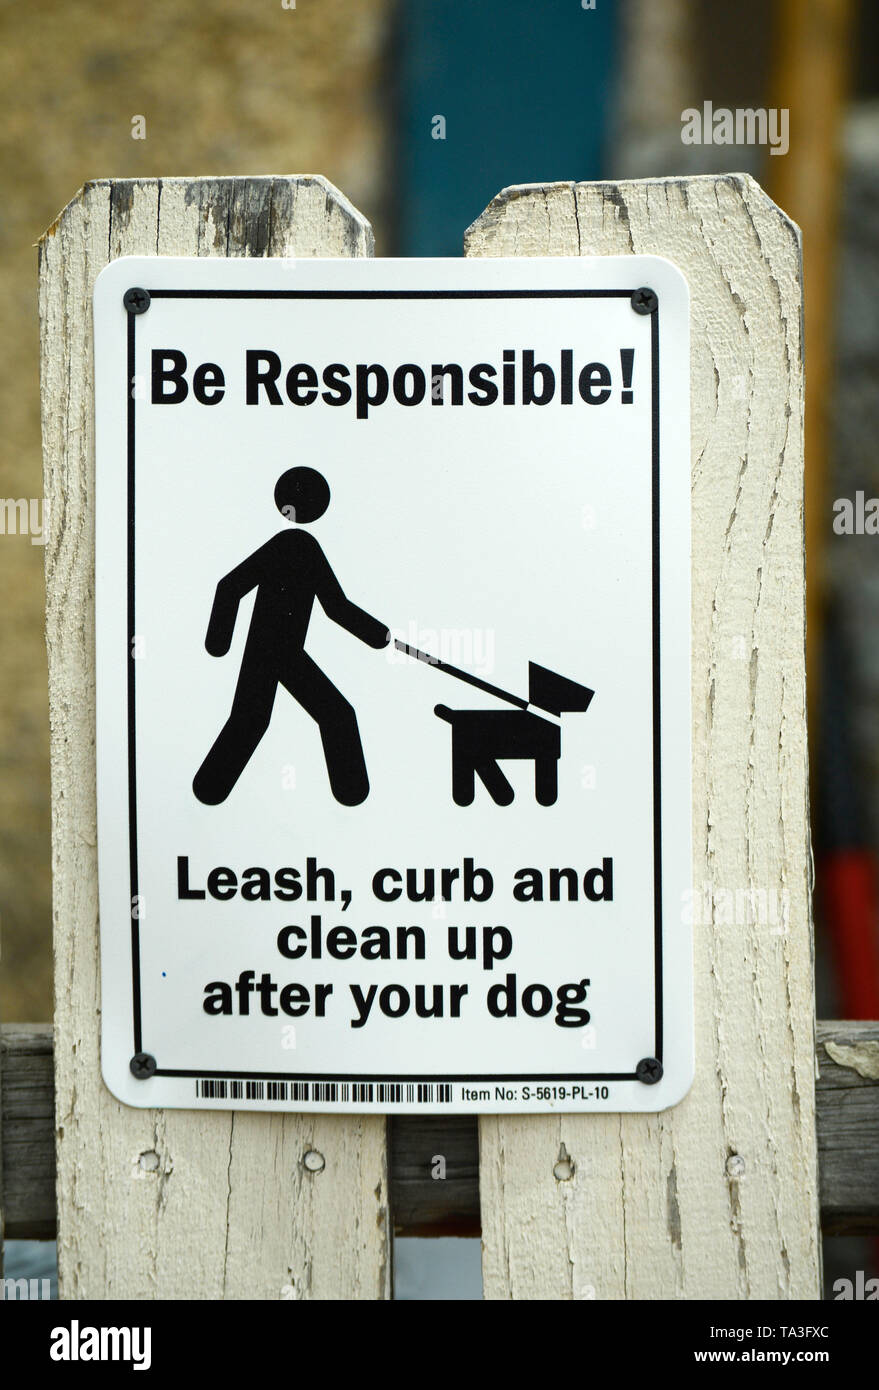 A sign on a picket fence asks pet owners to leash their dogs and clean up after their dogs. - Stock Image